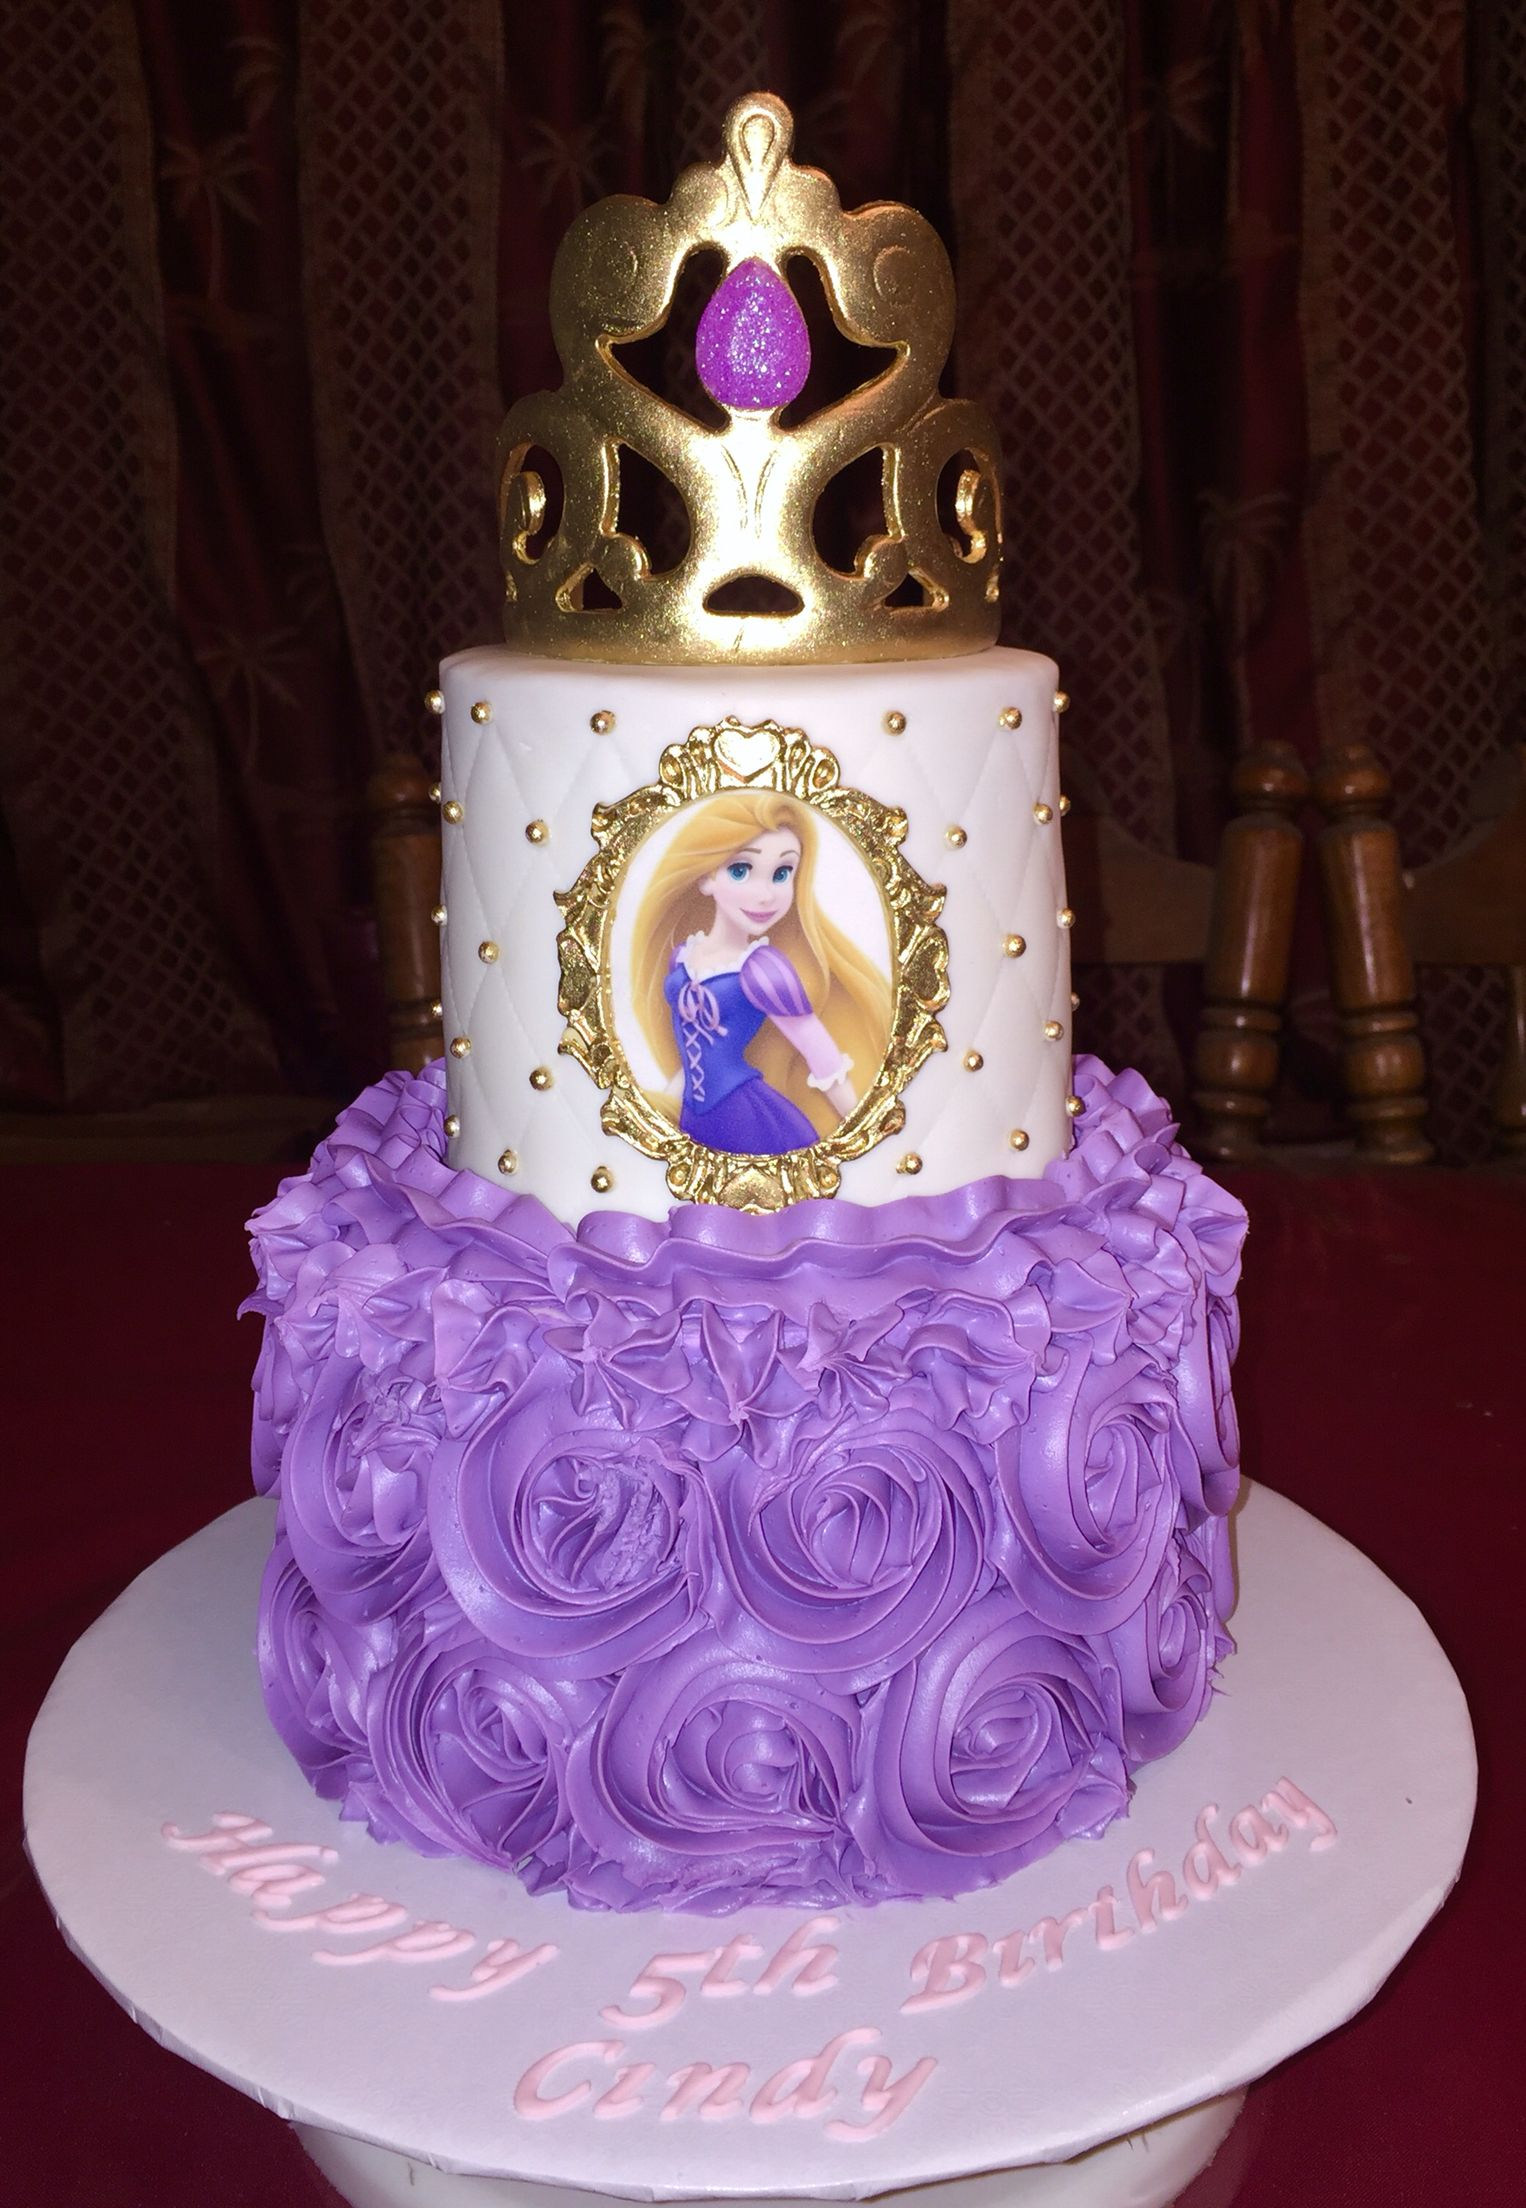 I made this 2 tier rosette repunzel cake with edible images and